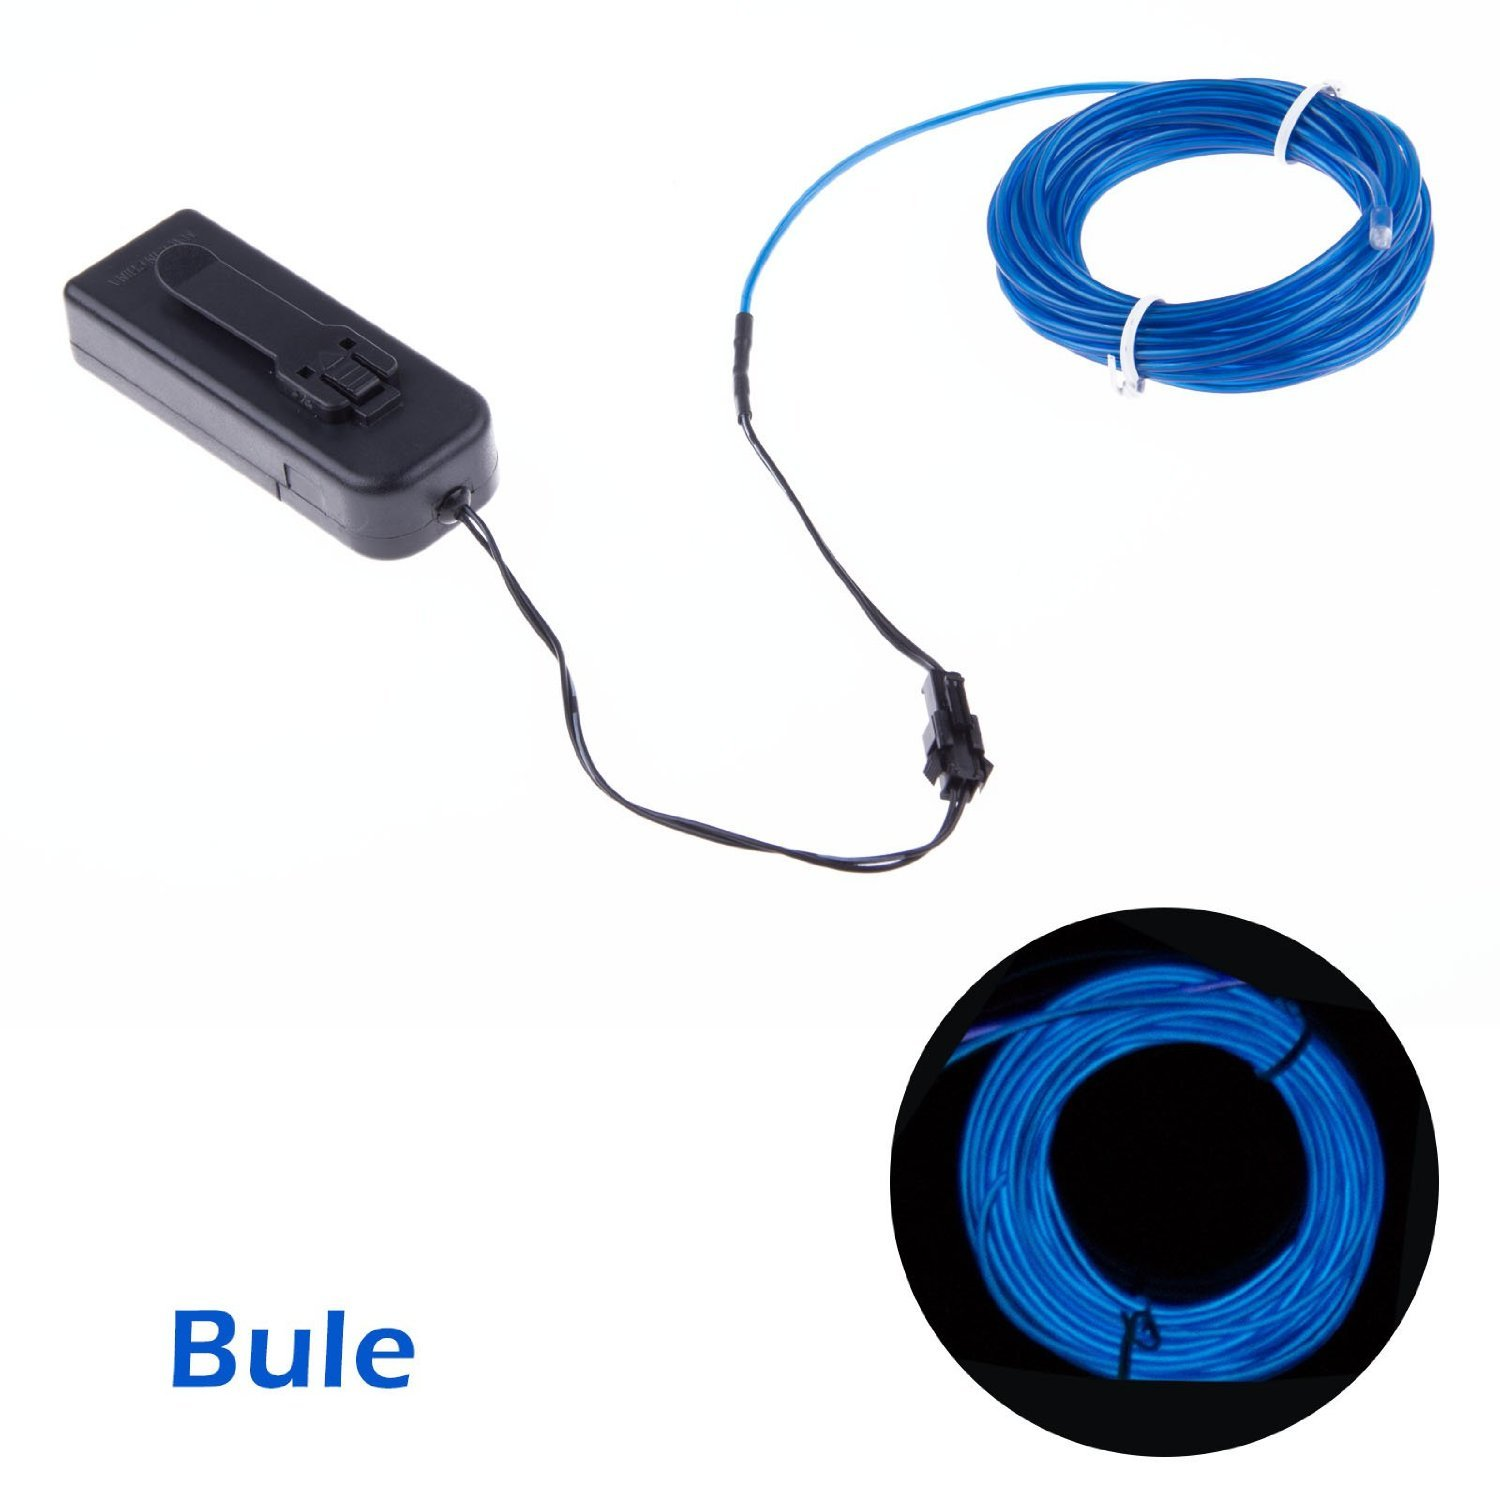 Amazon.com: Portable EL Wire 10 Feet Long (Blue): Home Improvement